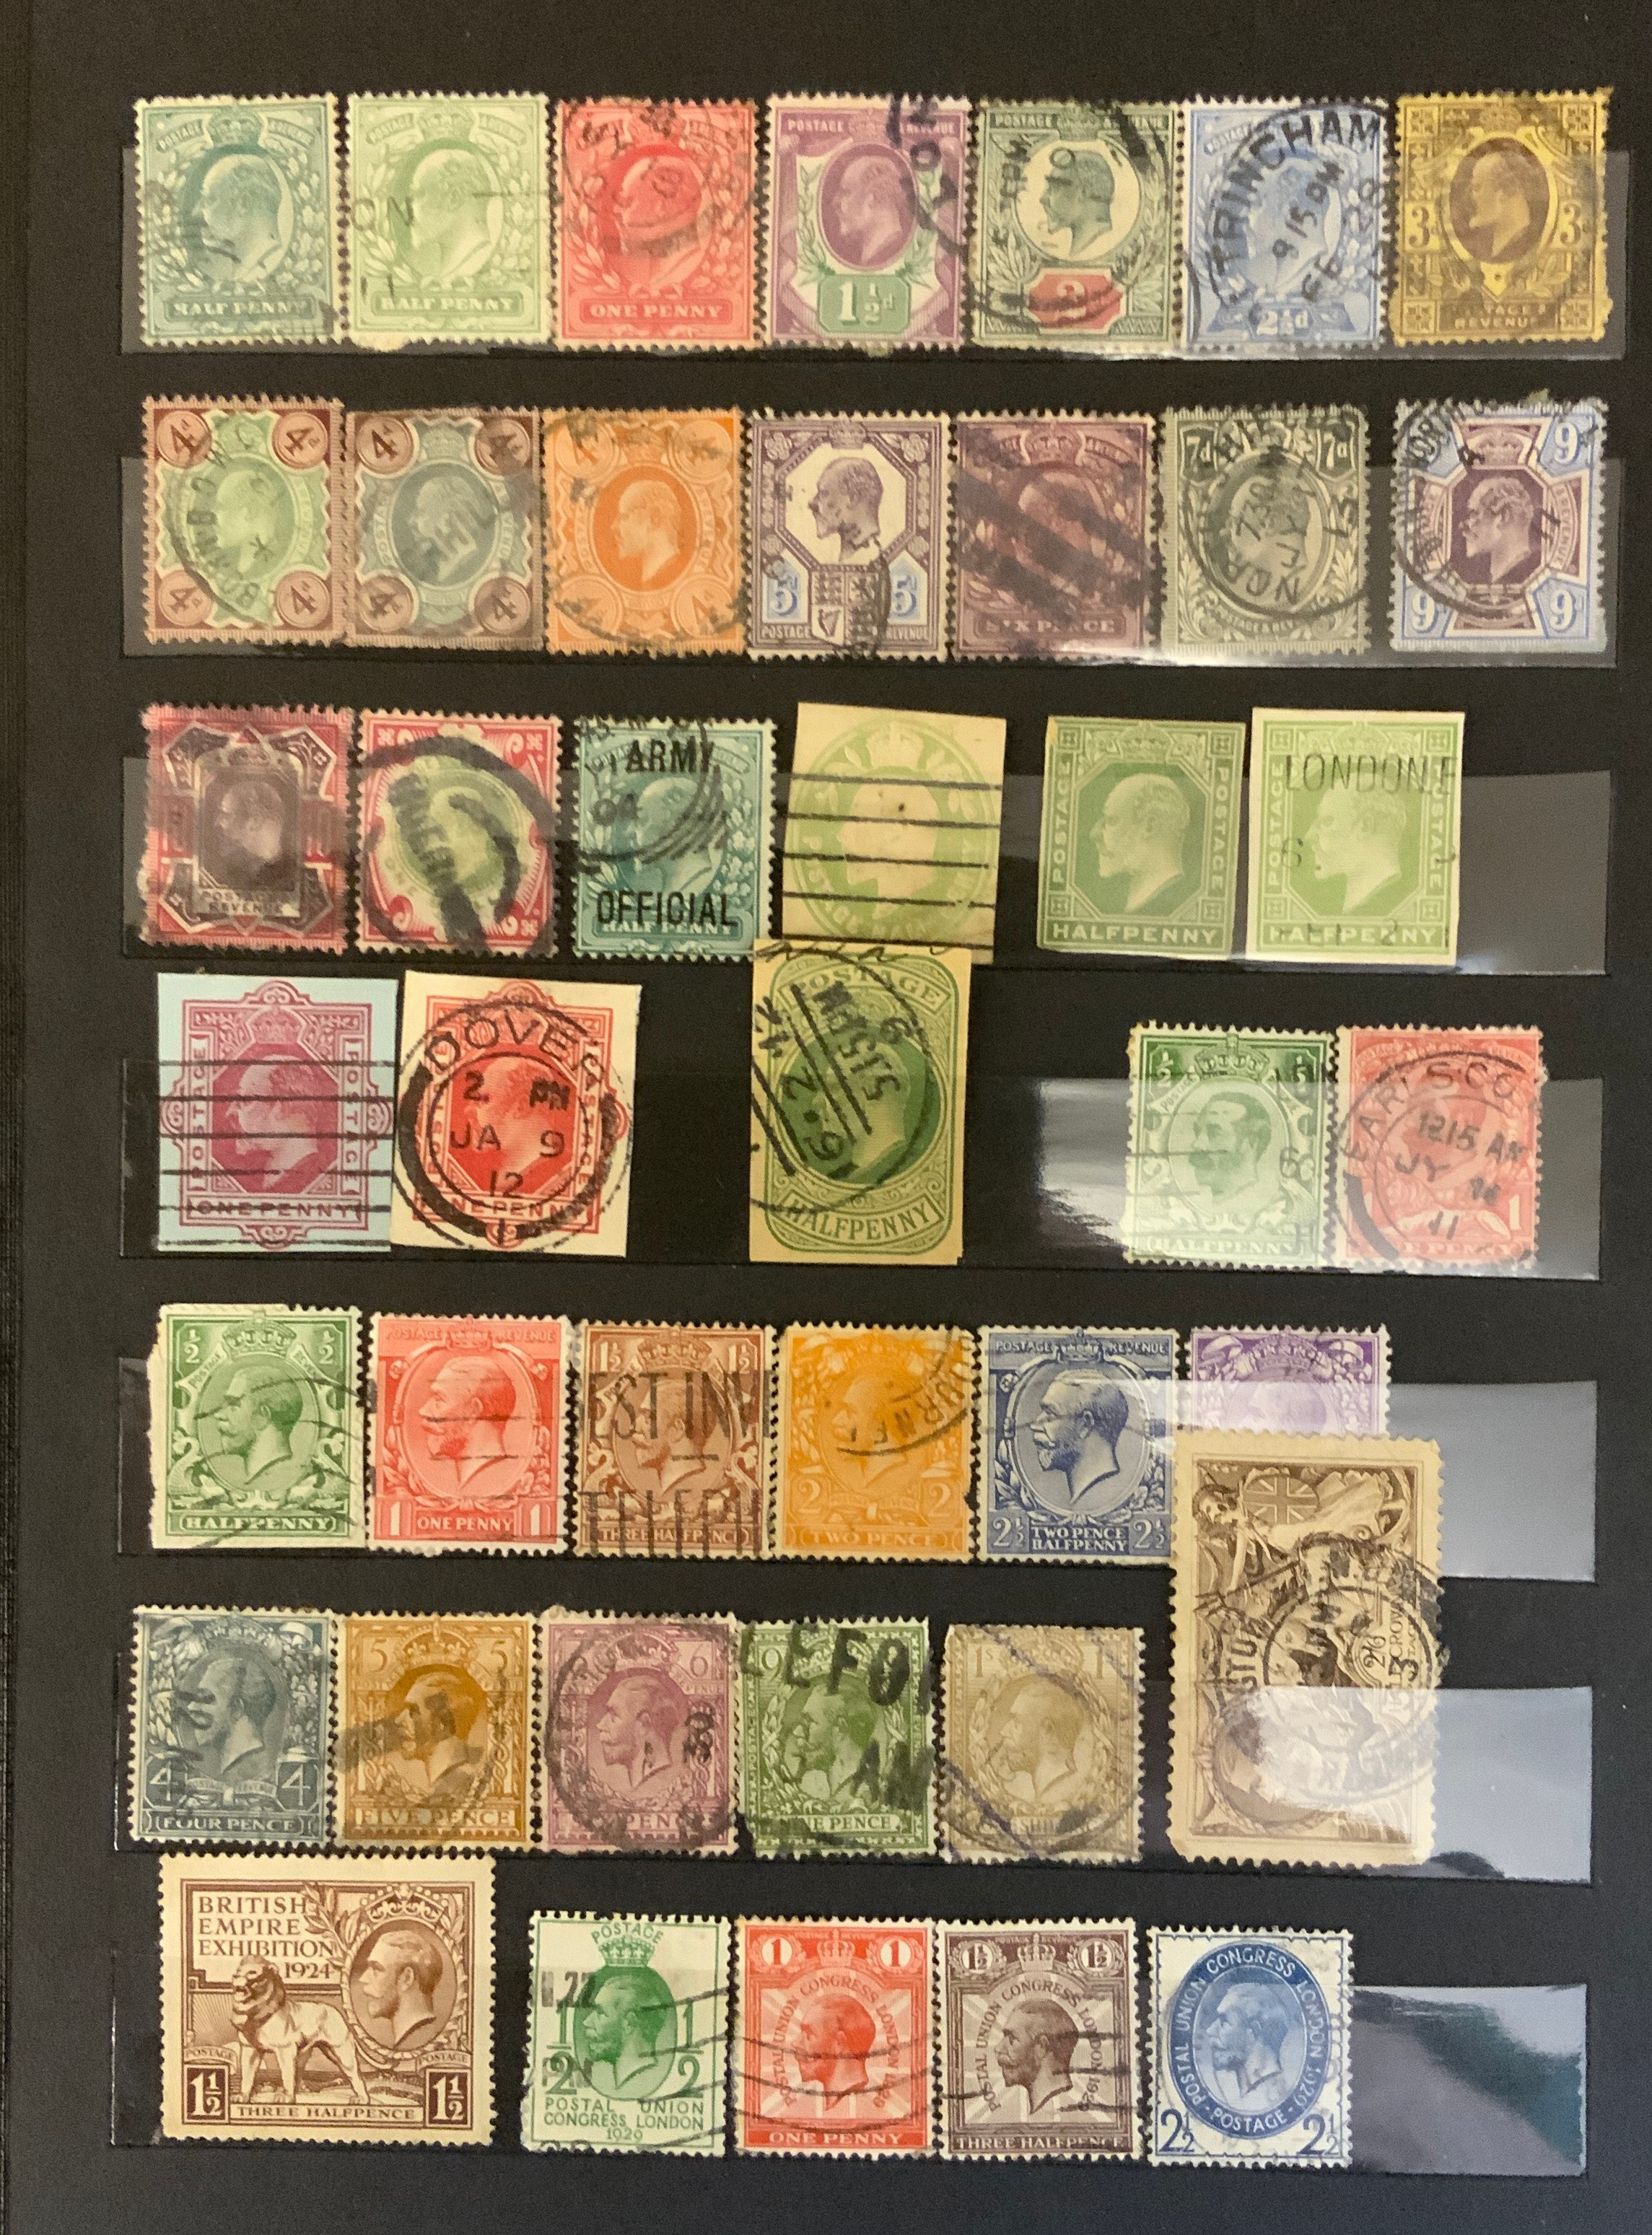 STOCKBOOK WITH BRITISH STAMPS - Image 2 of 2